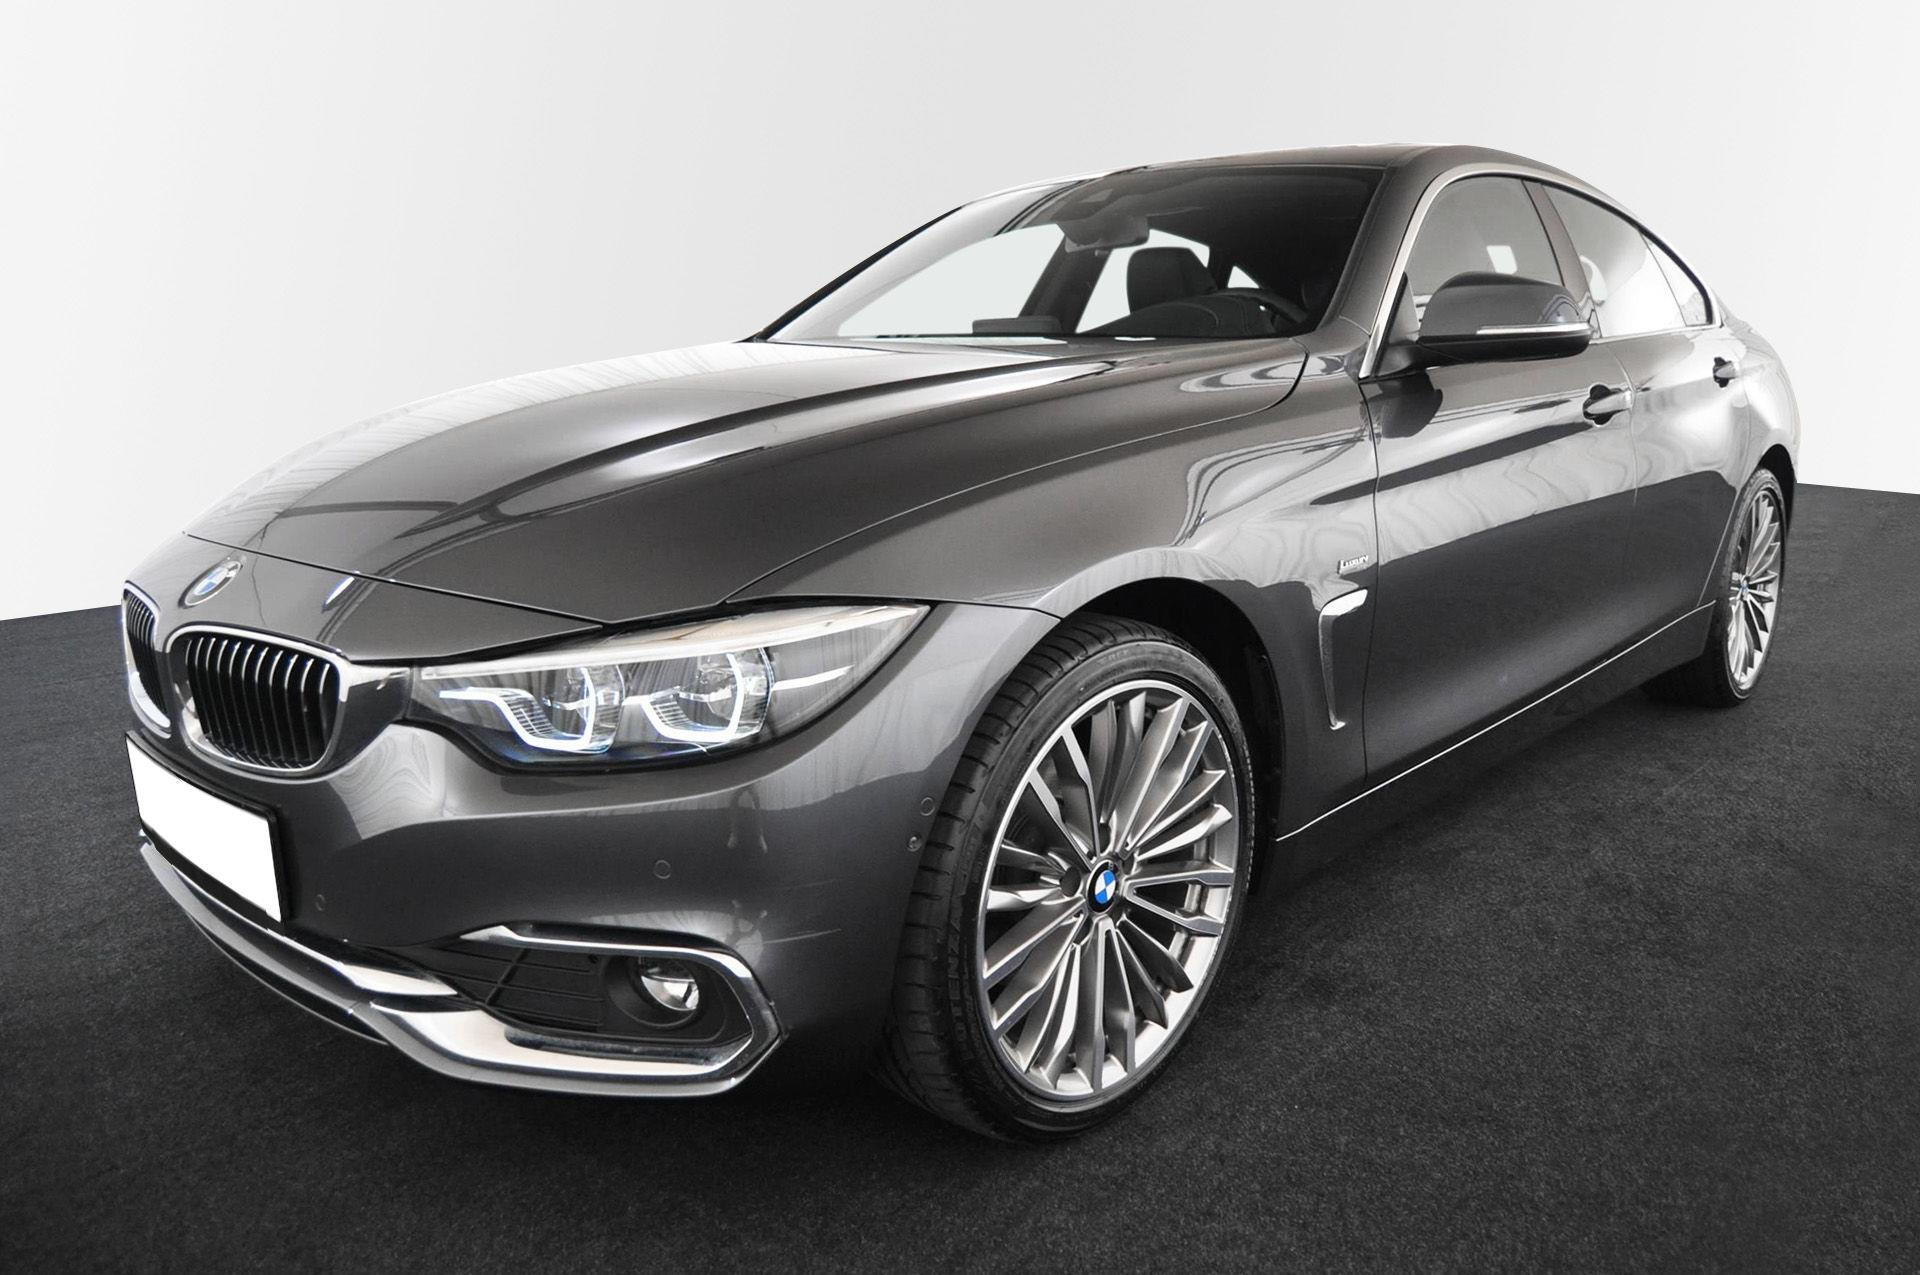 bmw-420da-xdrive-g-coupe-luxury-lednavm-disgsd19-0000213355.jpg